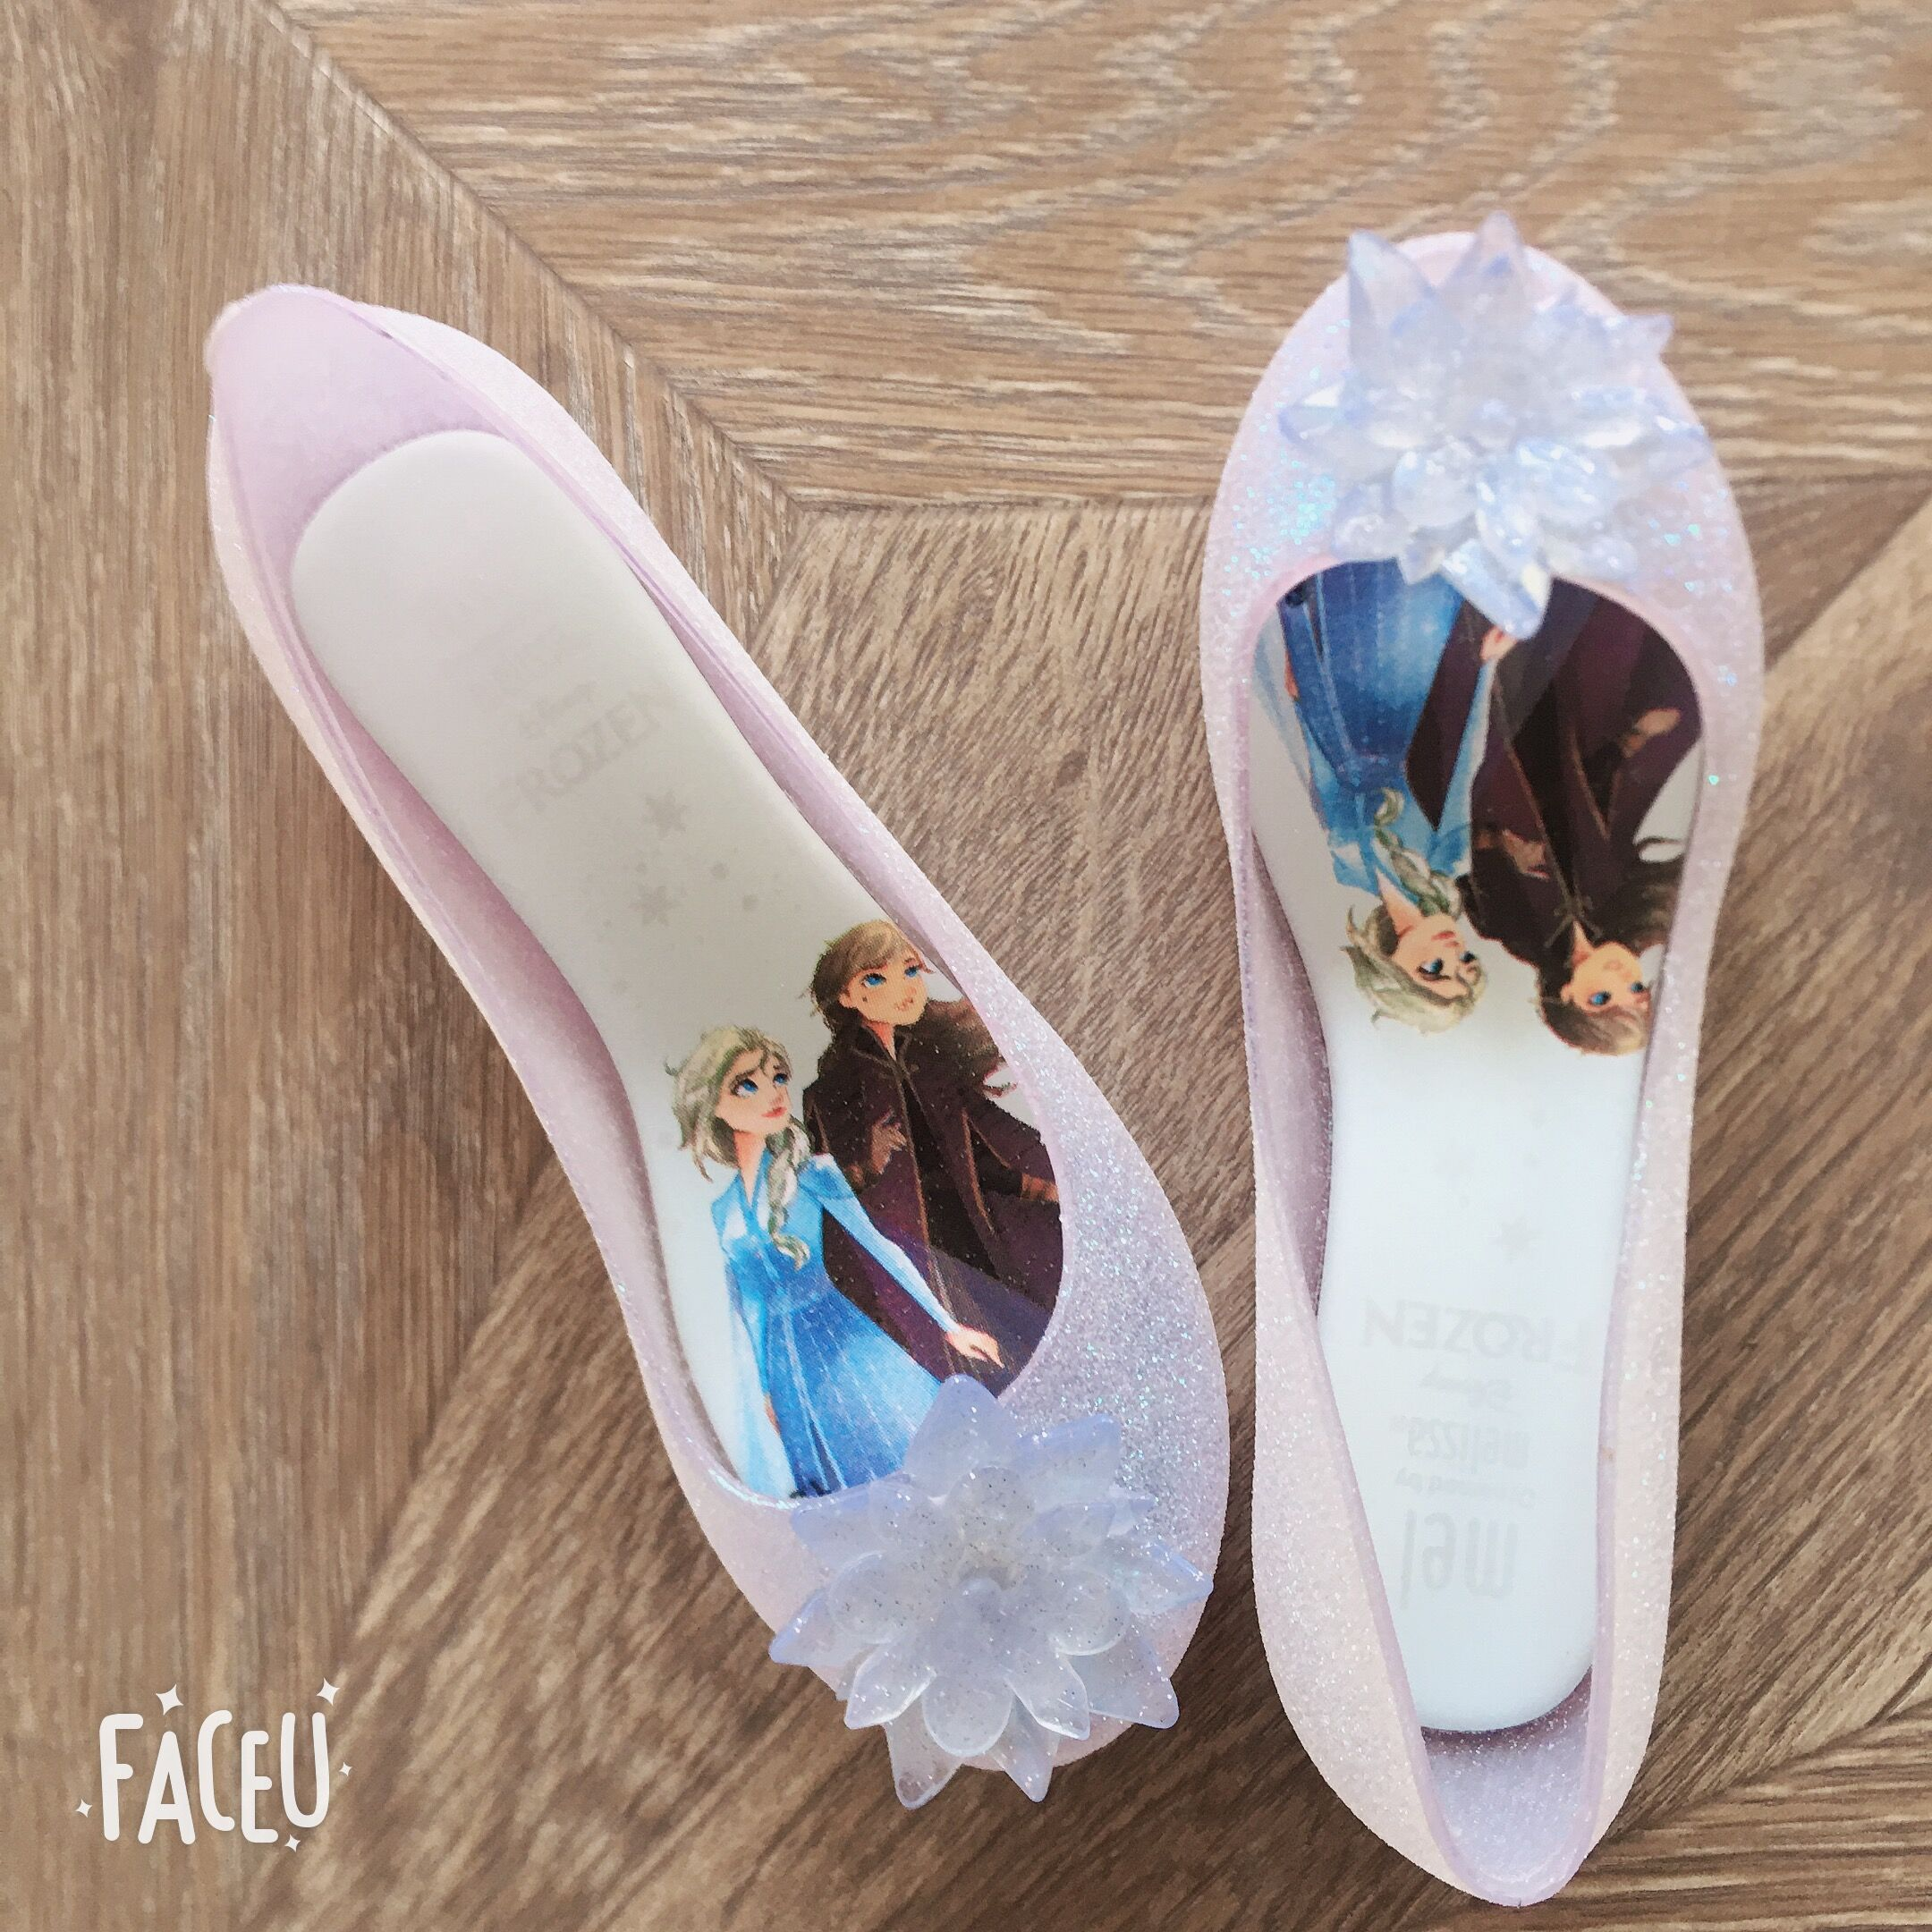 Mini Melissa Princess Elsa Girls Sandals Children Jelly Shoes Kids Little Big Girl Candy Shoes Shinny Ice Crystals Sandals MN023